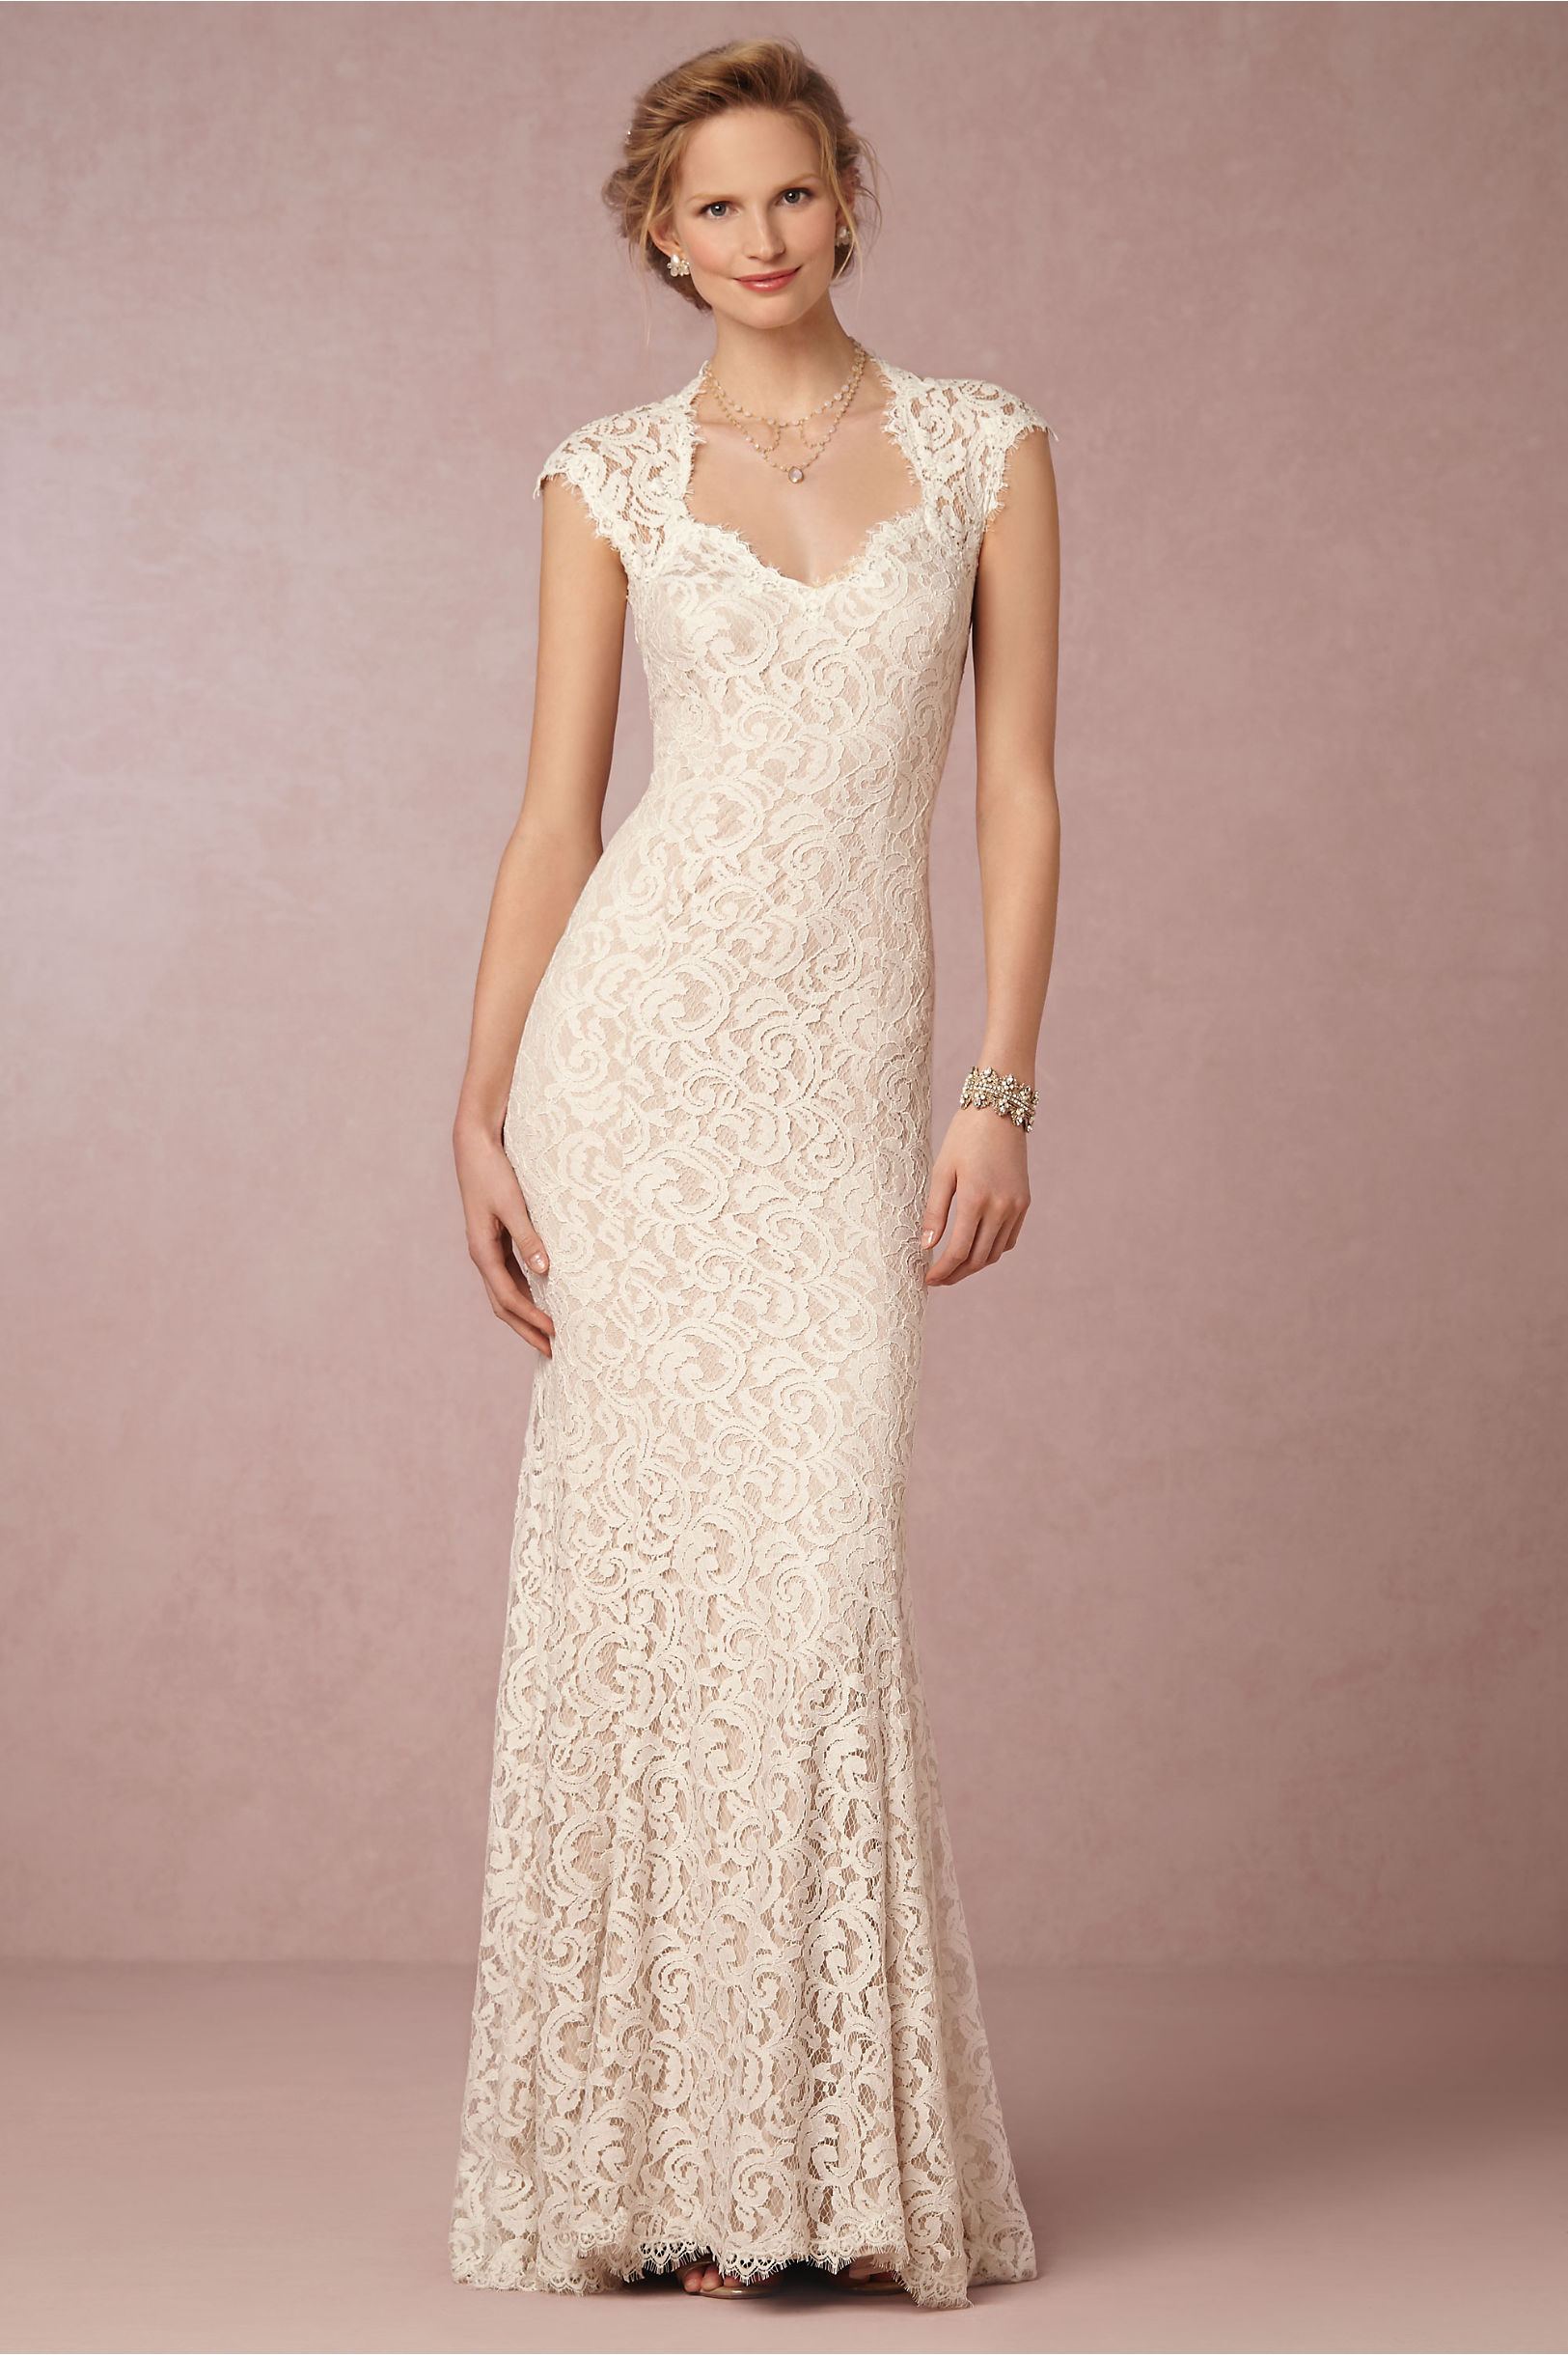 Marivana Lace Gown in Sale | BHLDN